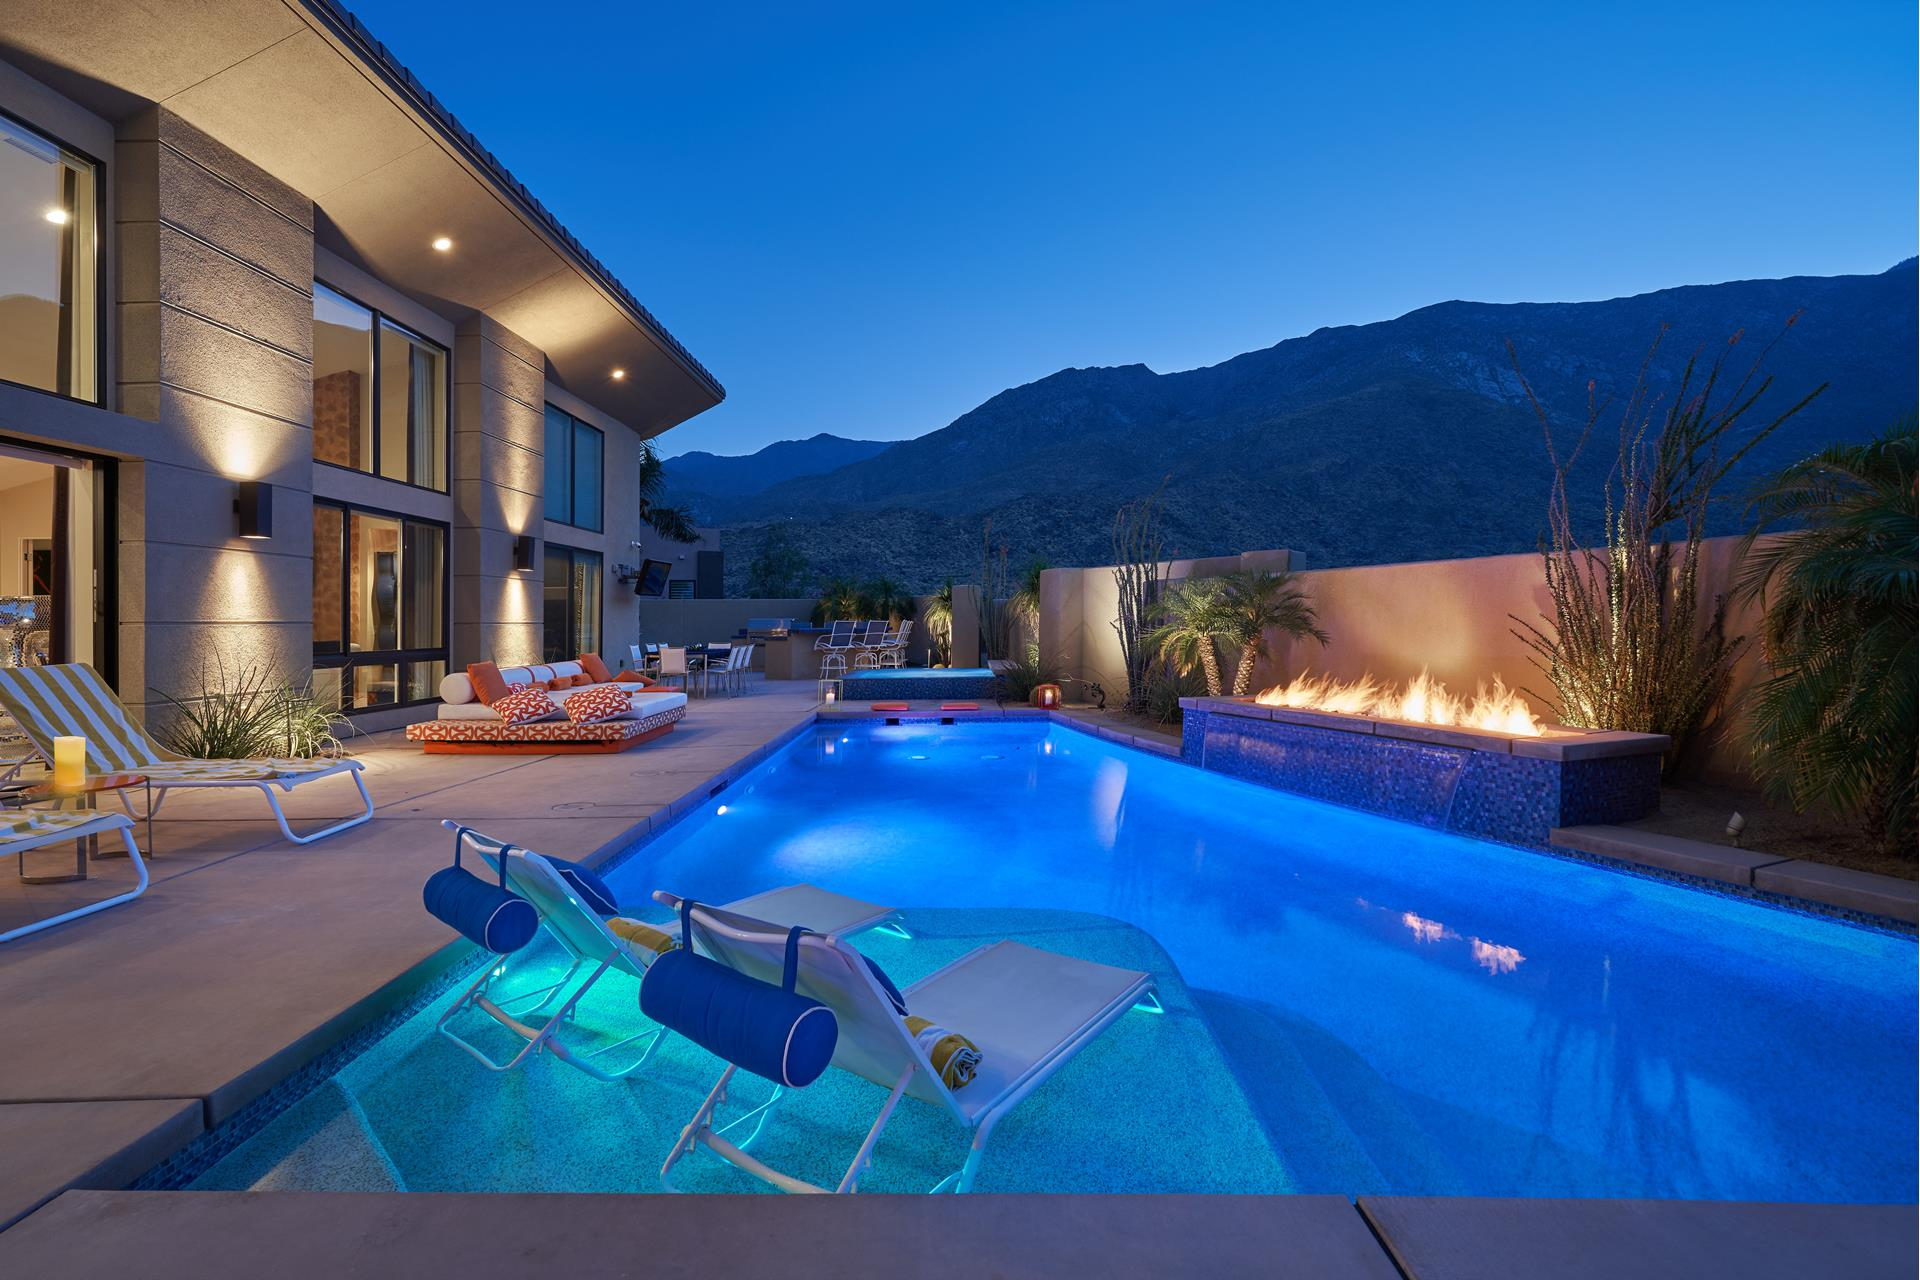 3149 Cody Court - Palm Springs, California